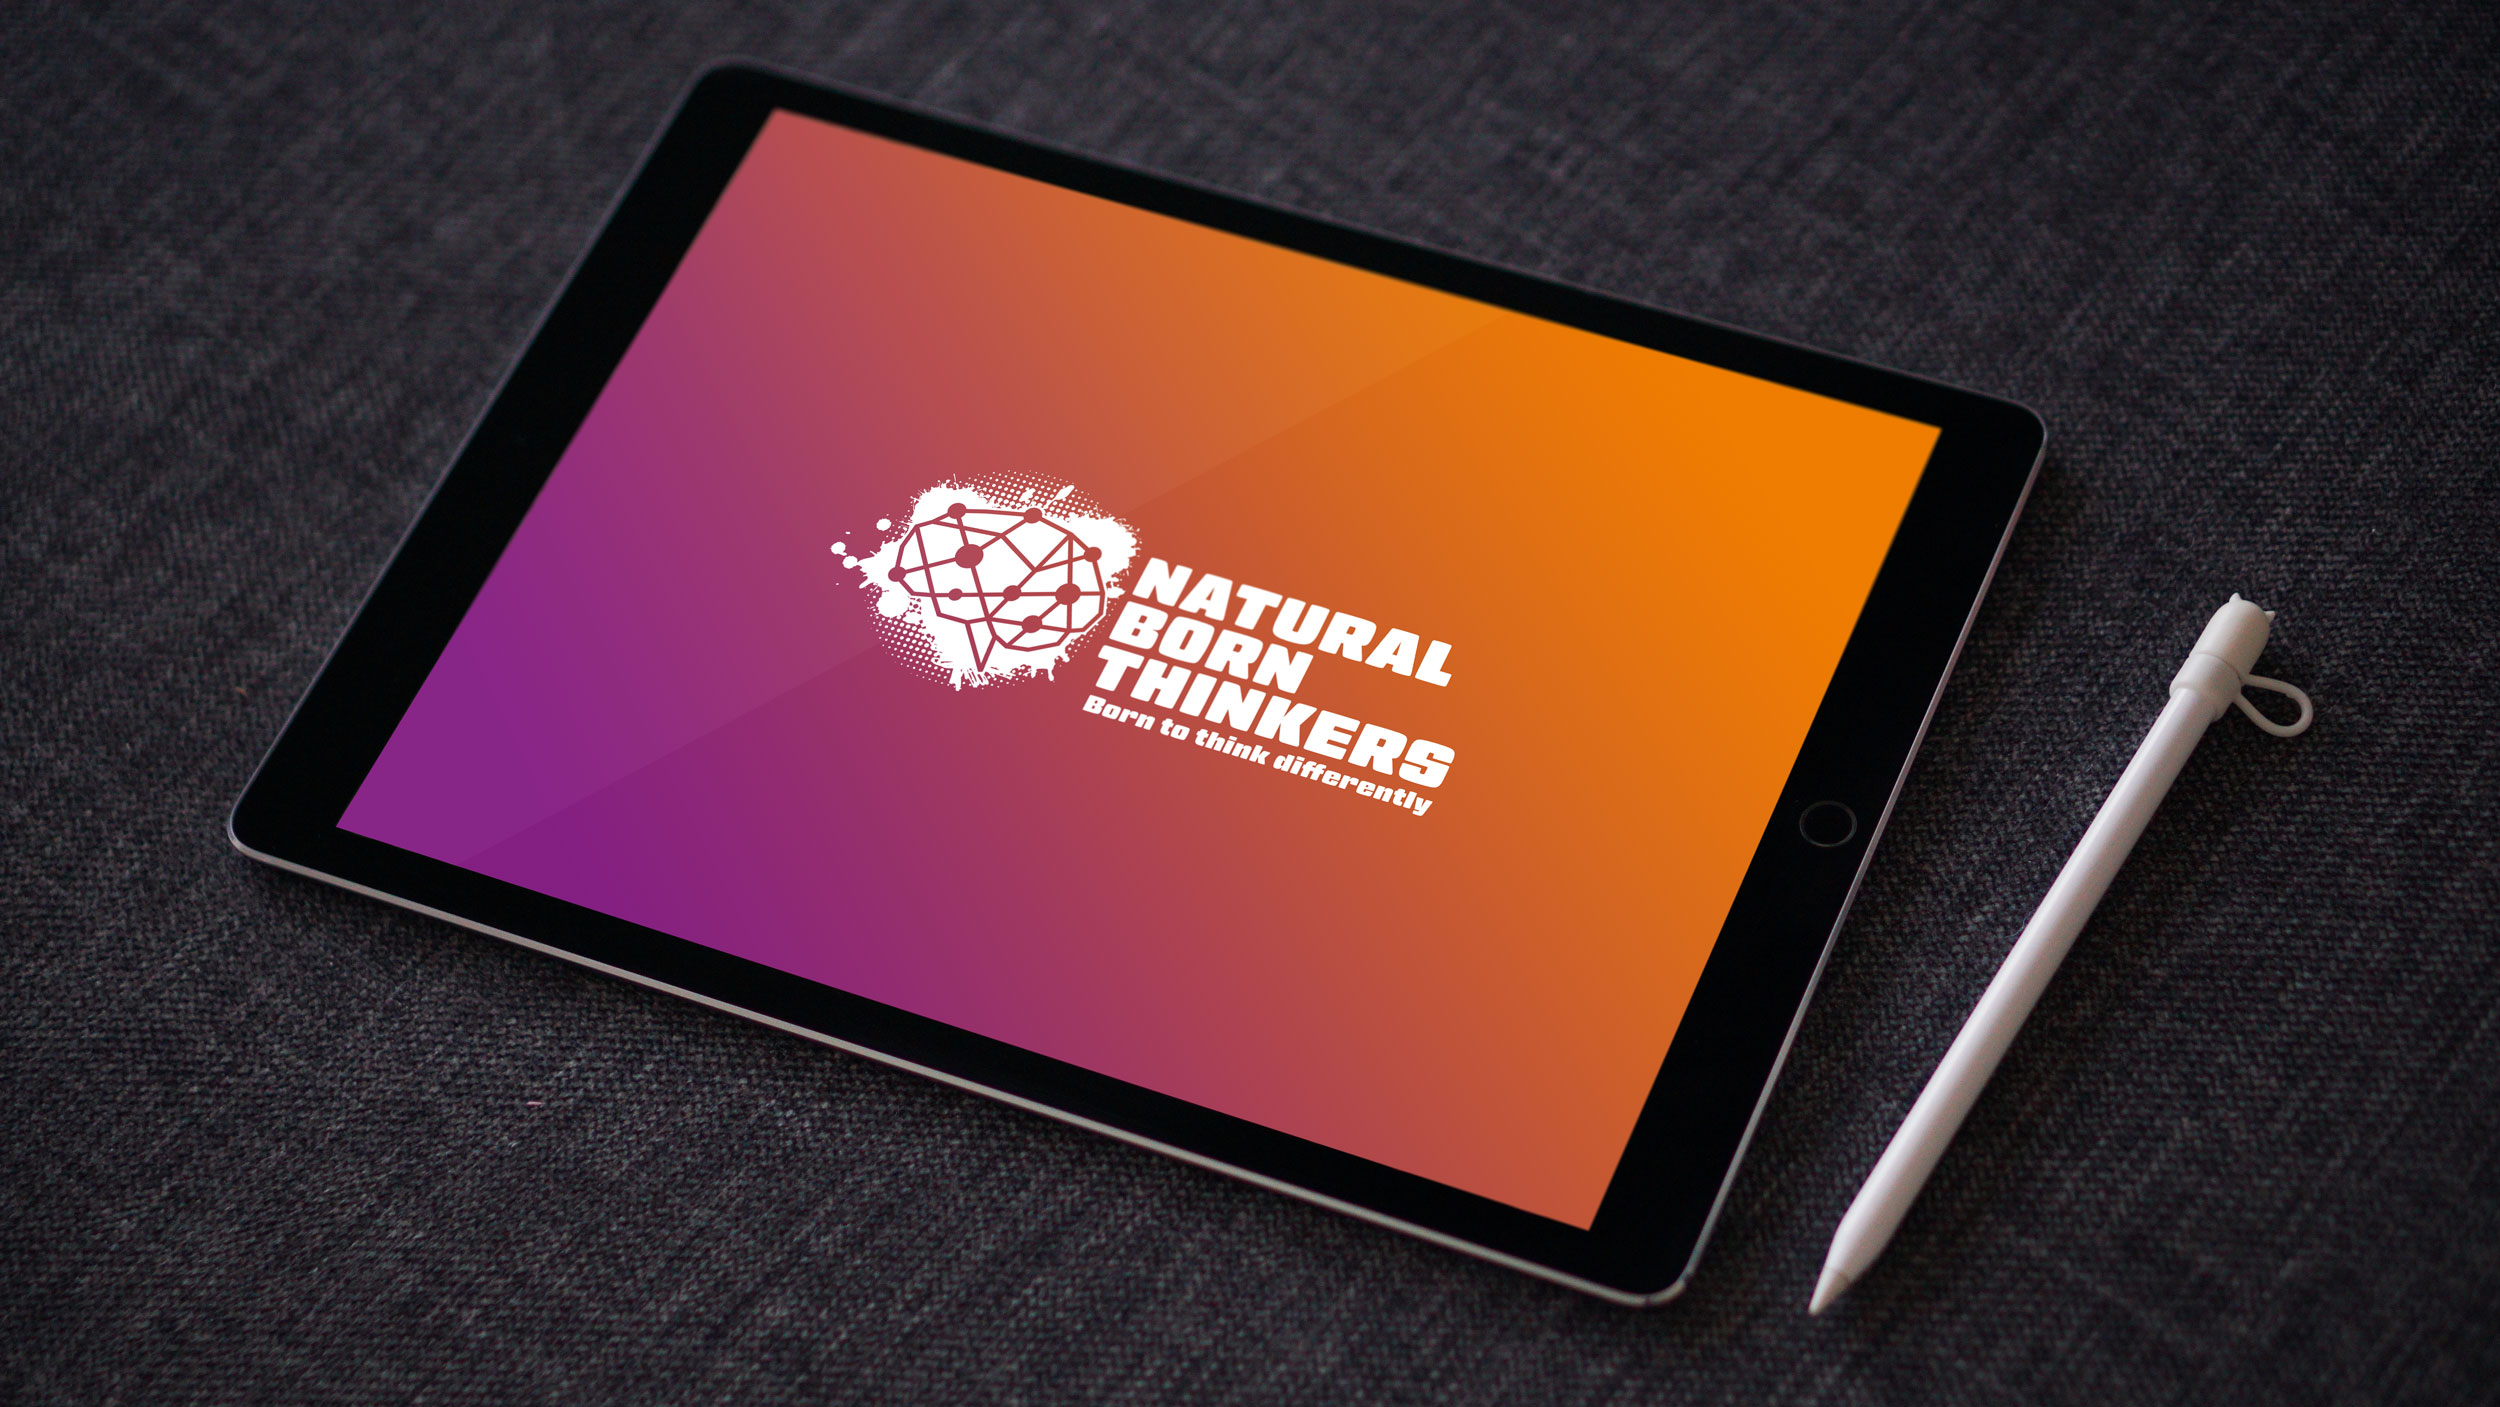 Natural born thinkers logo design on a tablet screen.